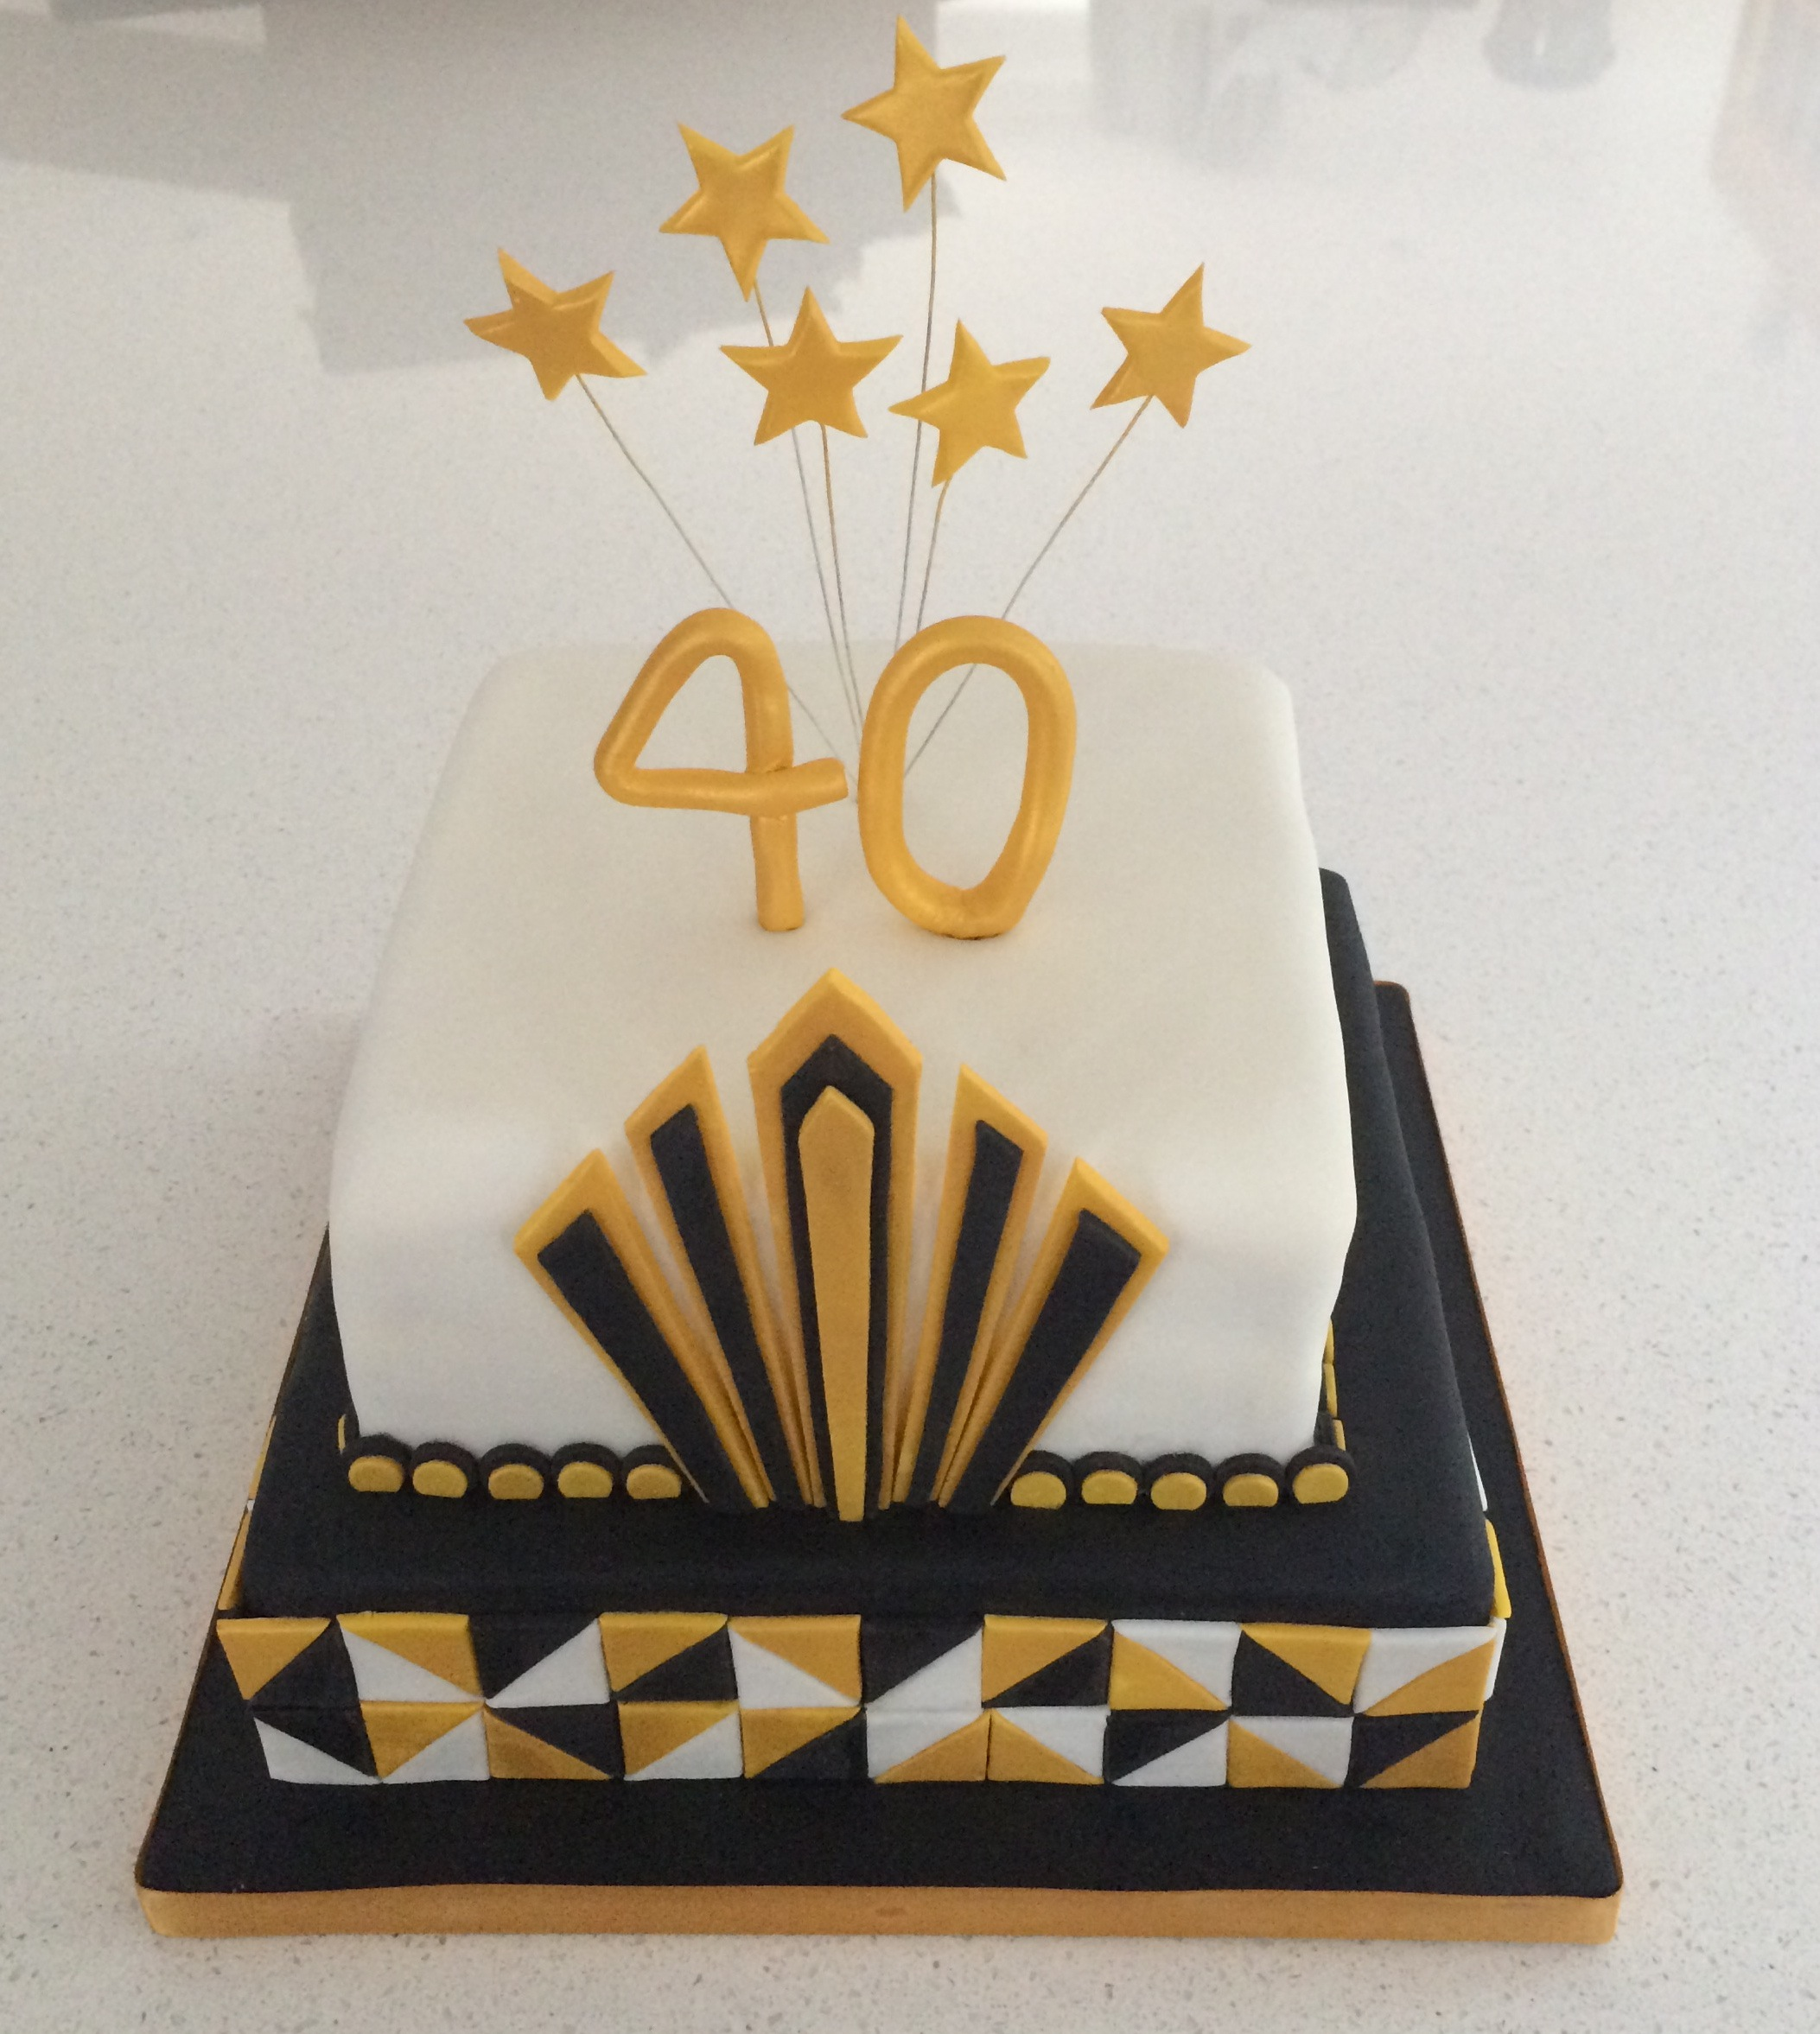 40th Cake - Art Deco